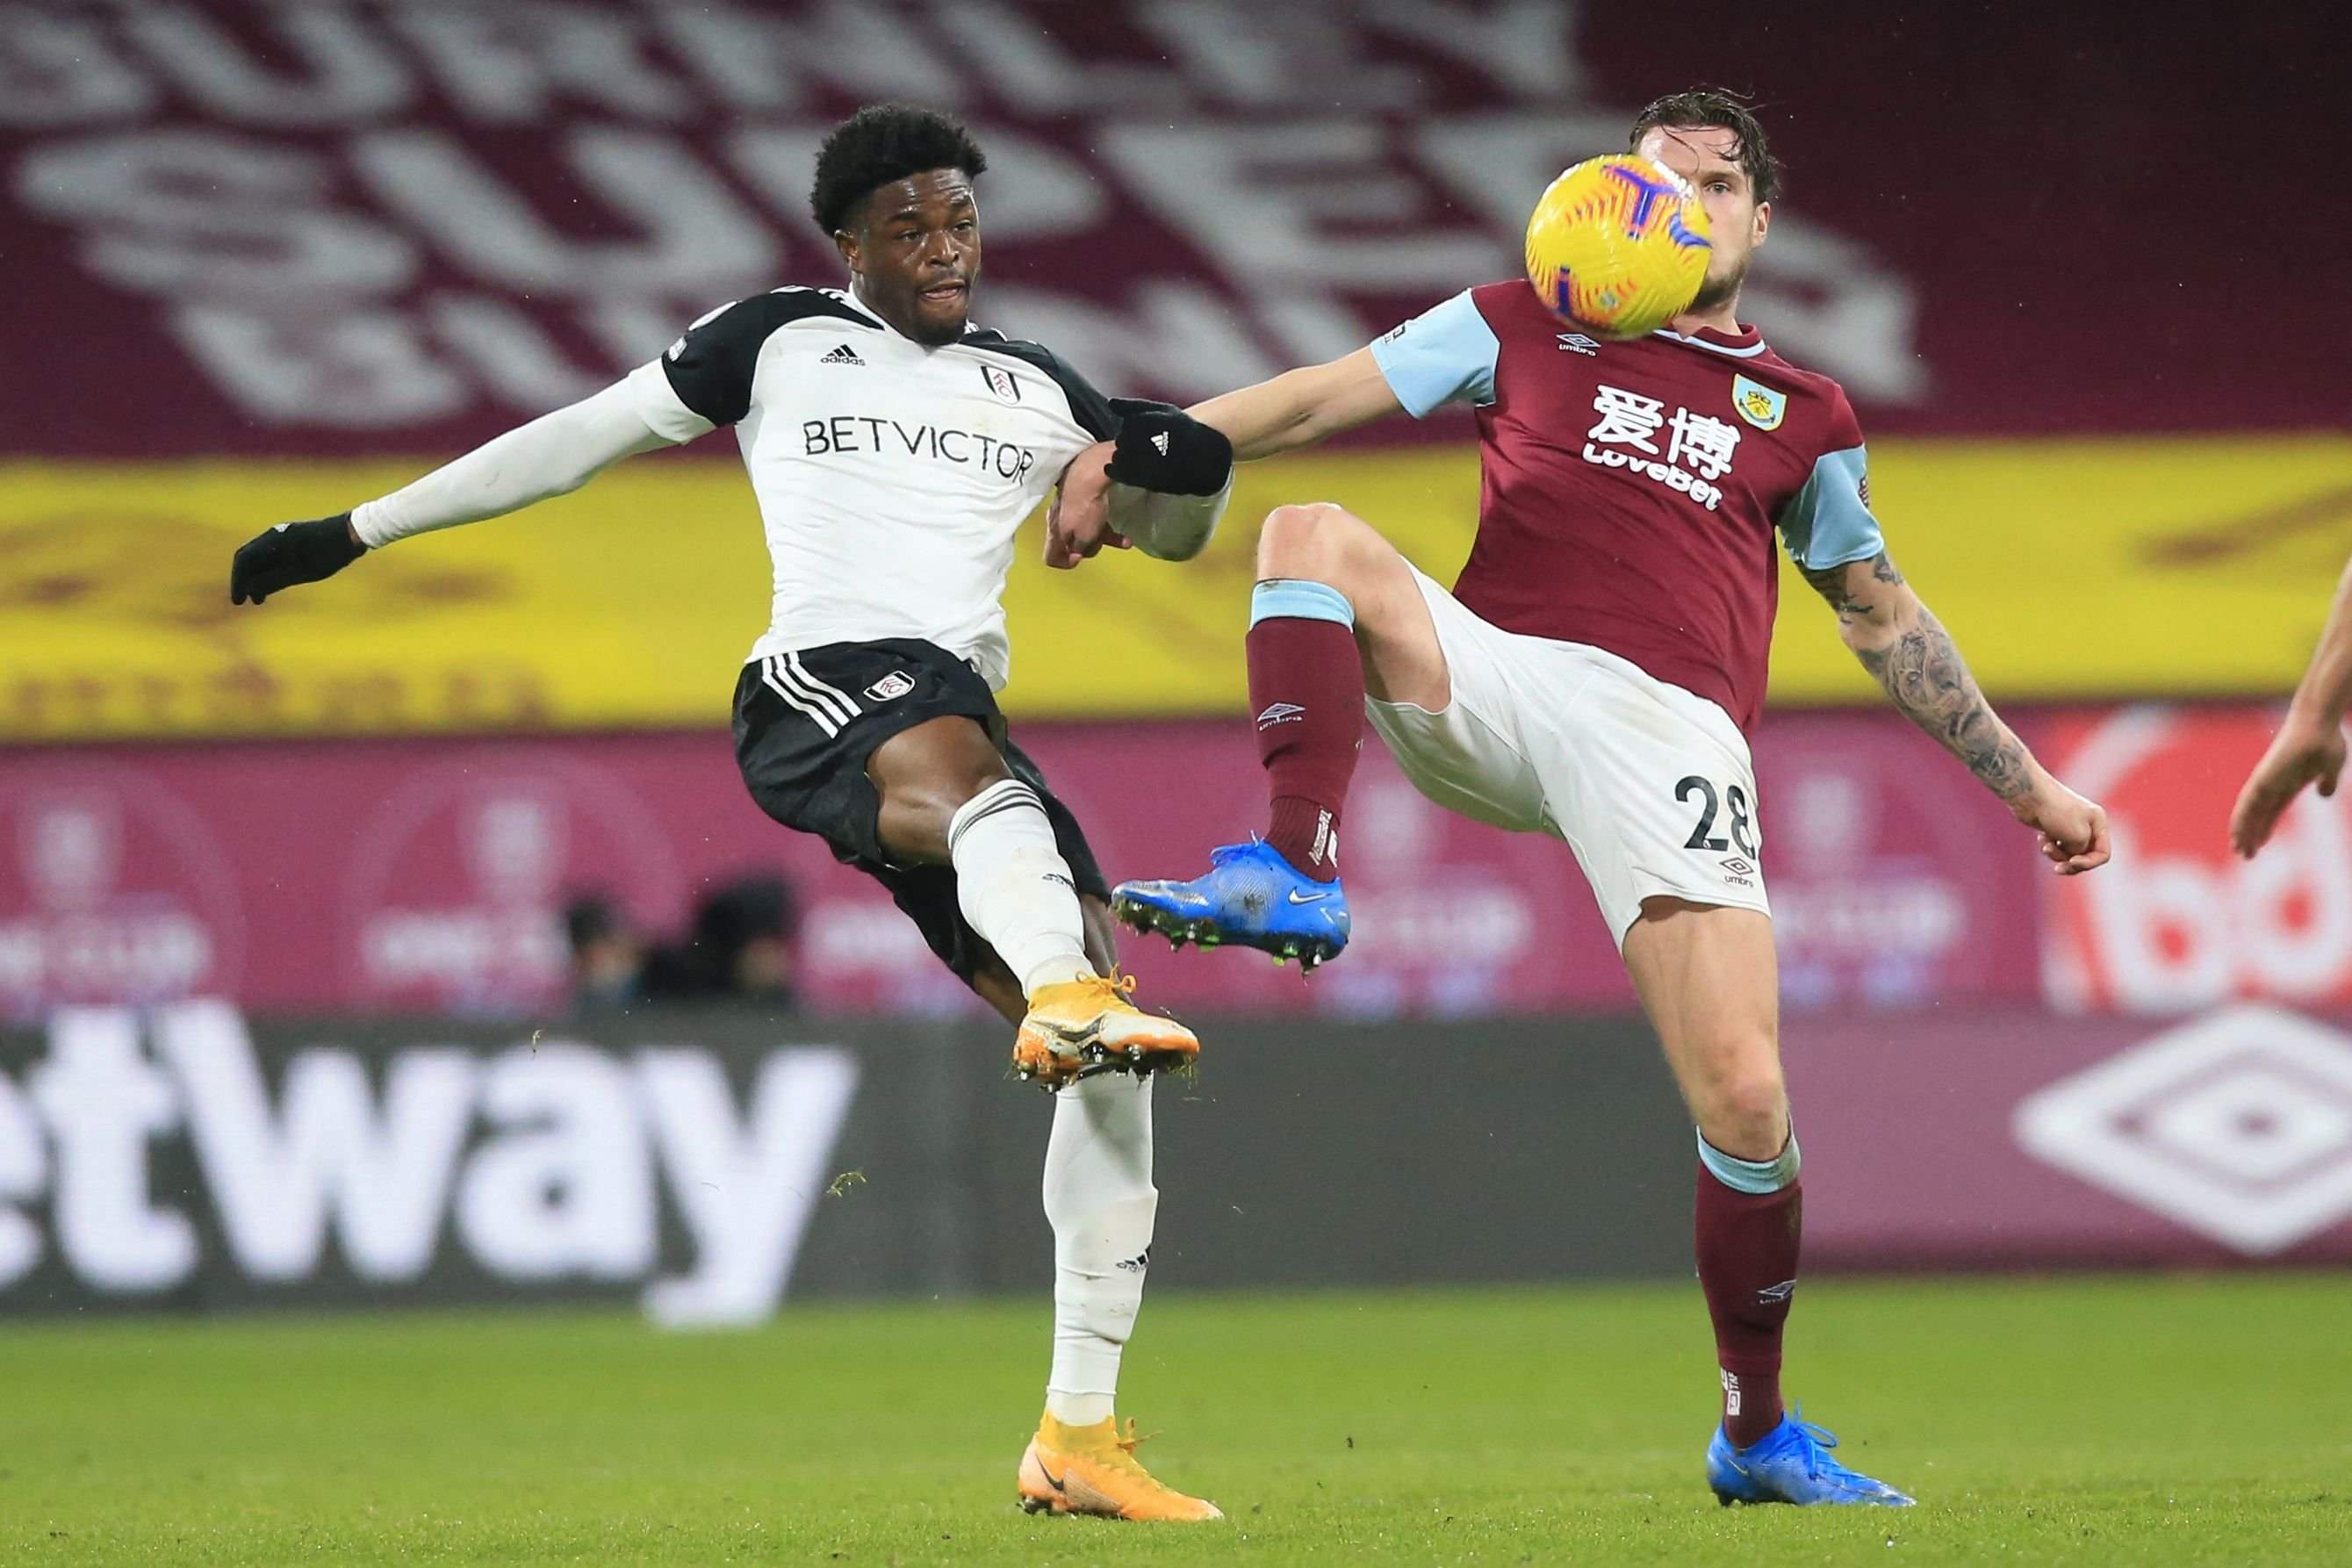 Fulham's Nigerian striker Josh Maja (L) vies with Burnley's Irish defender Kevin Long during their English Premier League match at Turf Moor in Burnley, U.K., Feb. 17, 2021. (AFP Photo)